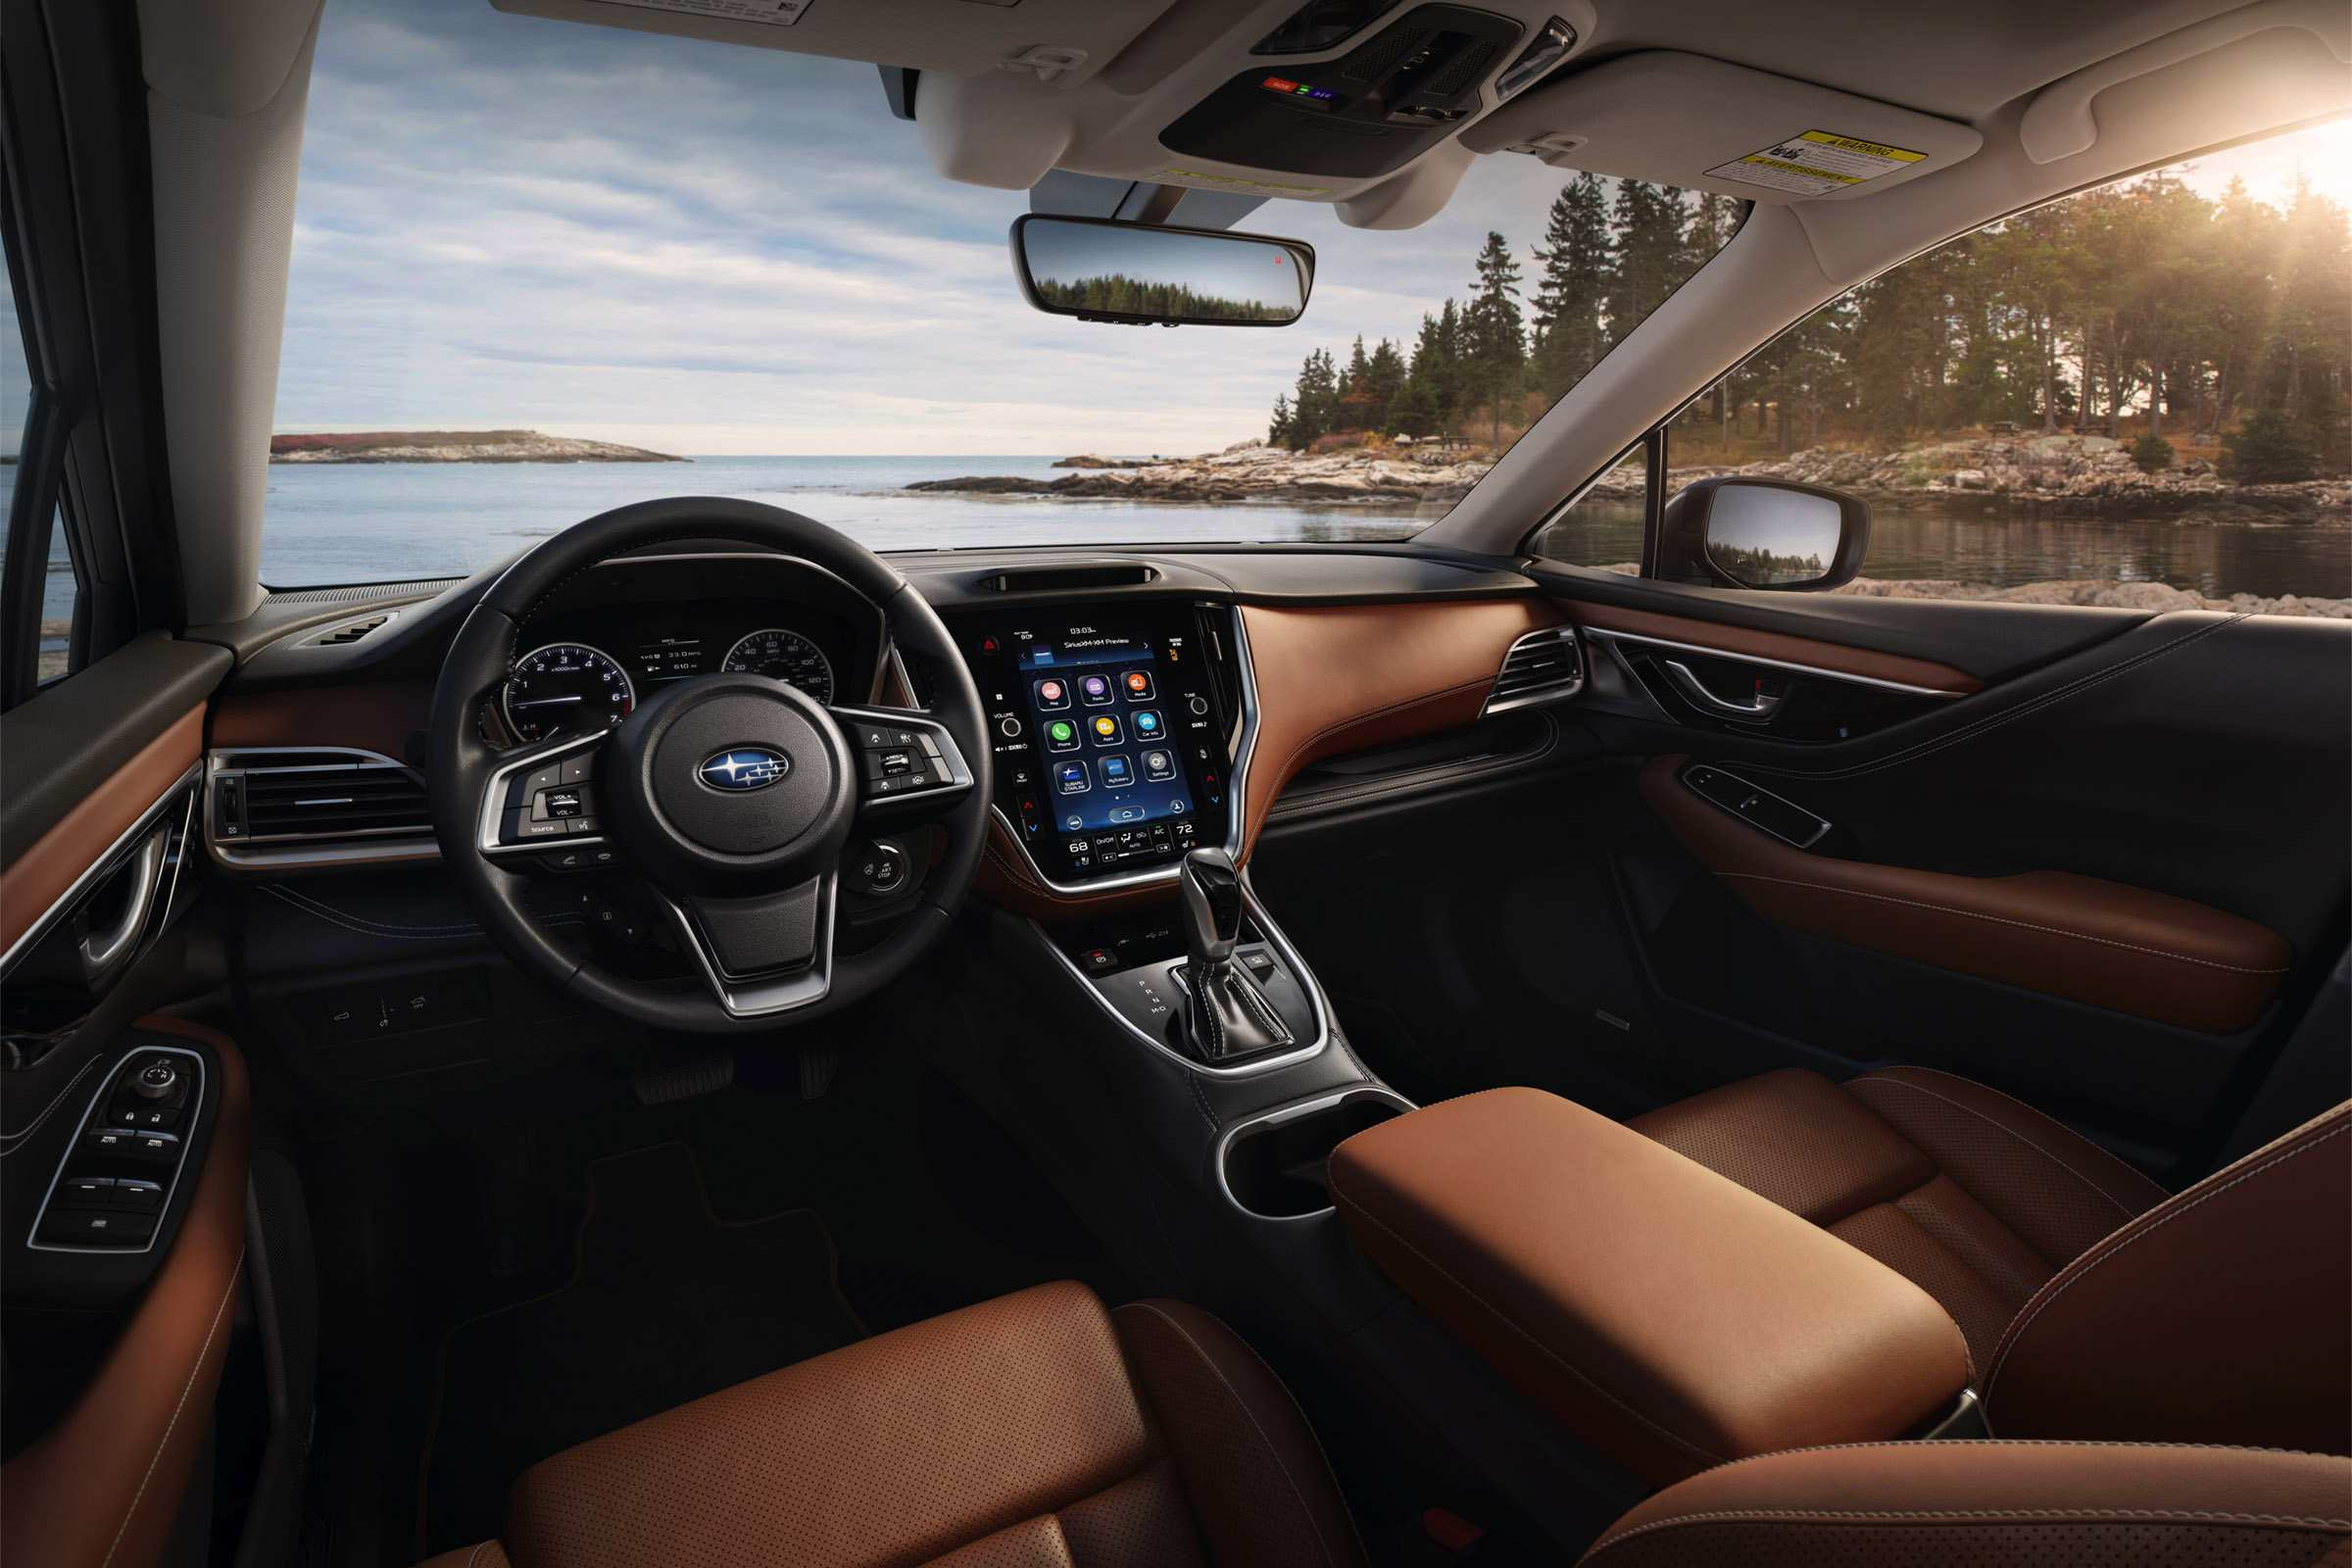 64 The Best Subaru Outback 2020 Engine Style